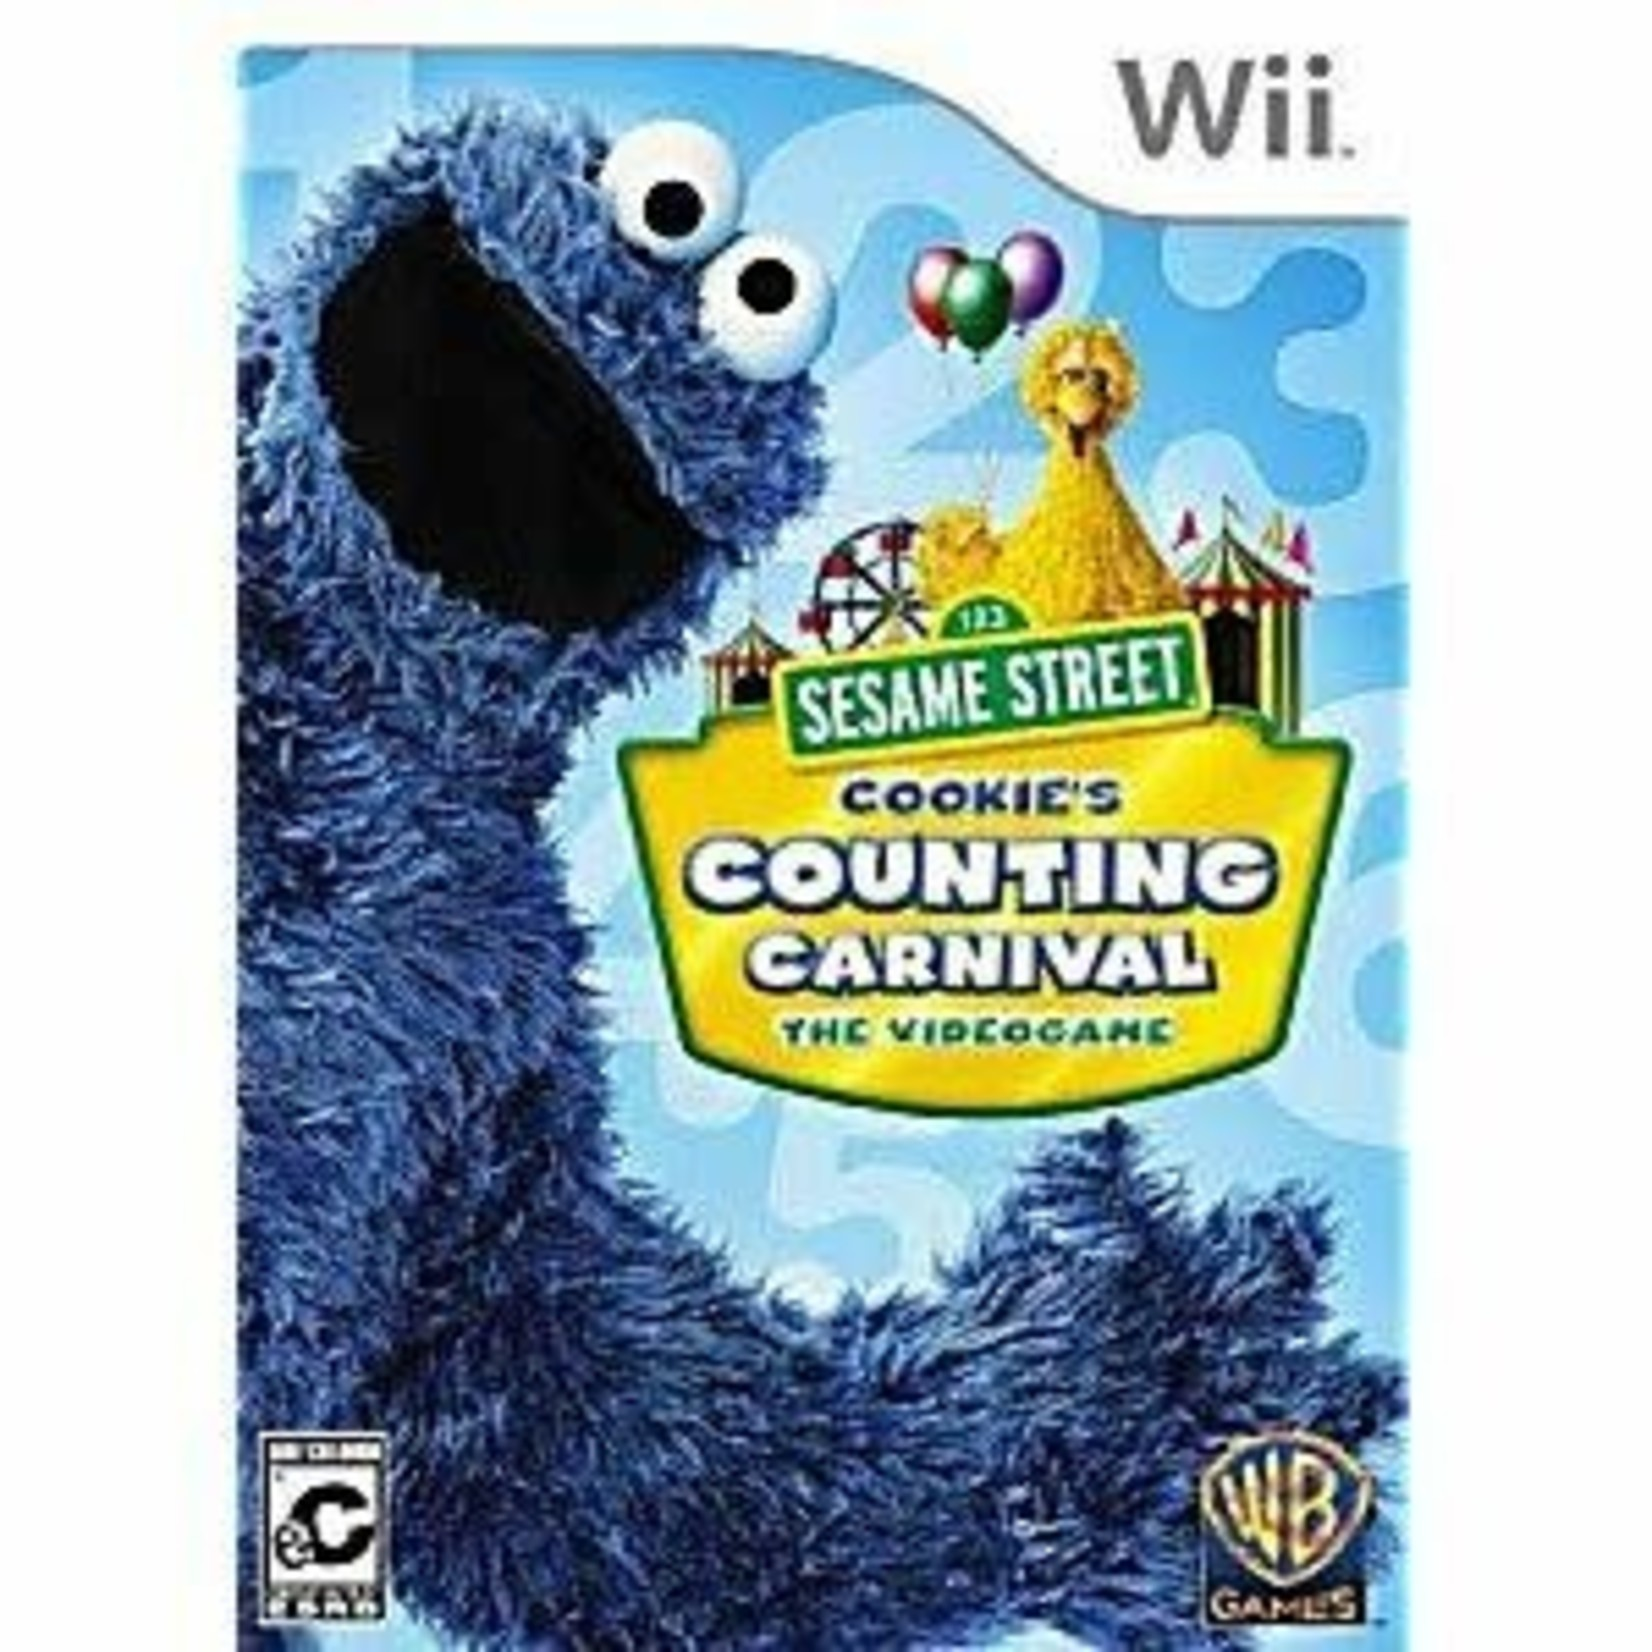 wiiusd-Sesame Street: Cookie's Counting Carnival